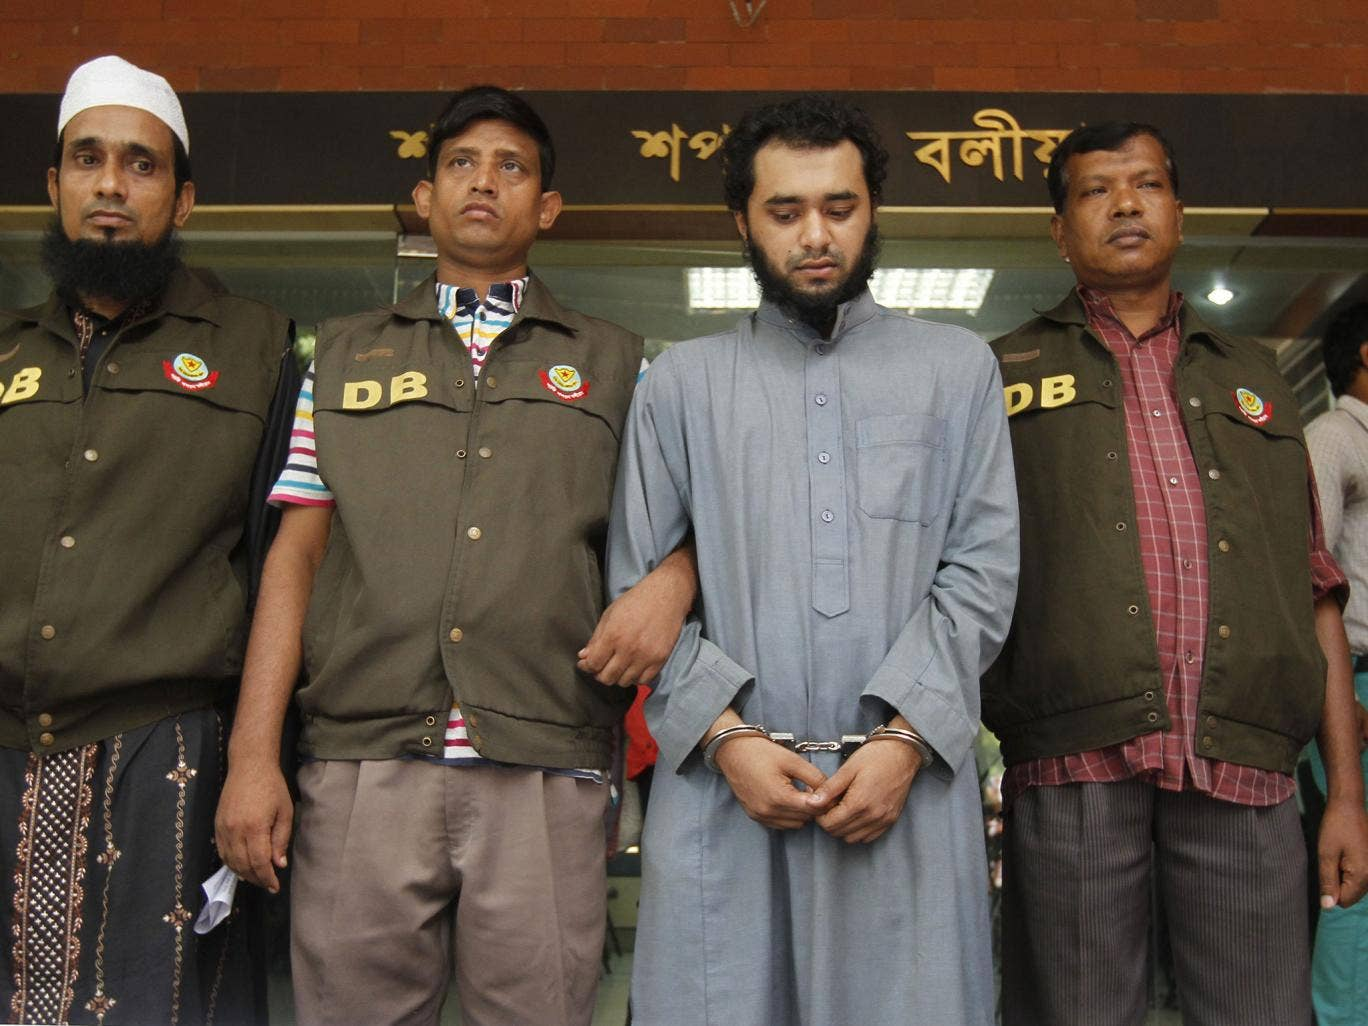 Samiun Rahman, centre, was re-arrested at a train station for the media's benefit, according to a human rights group